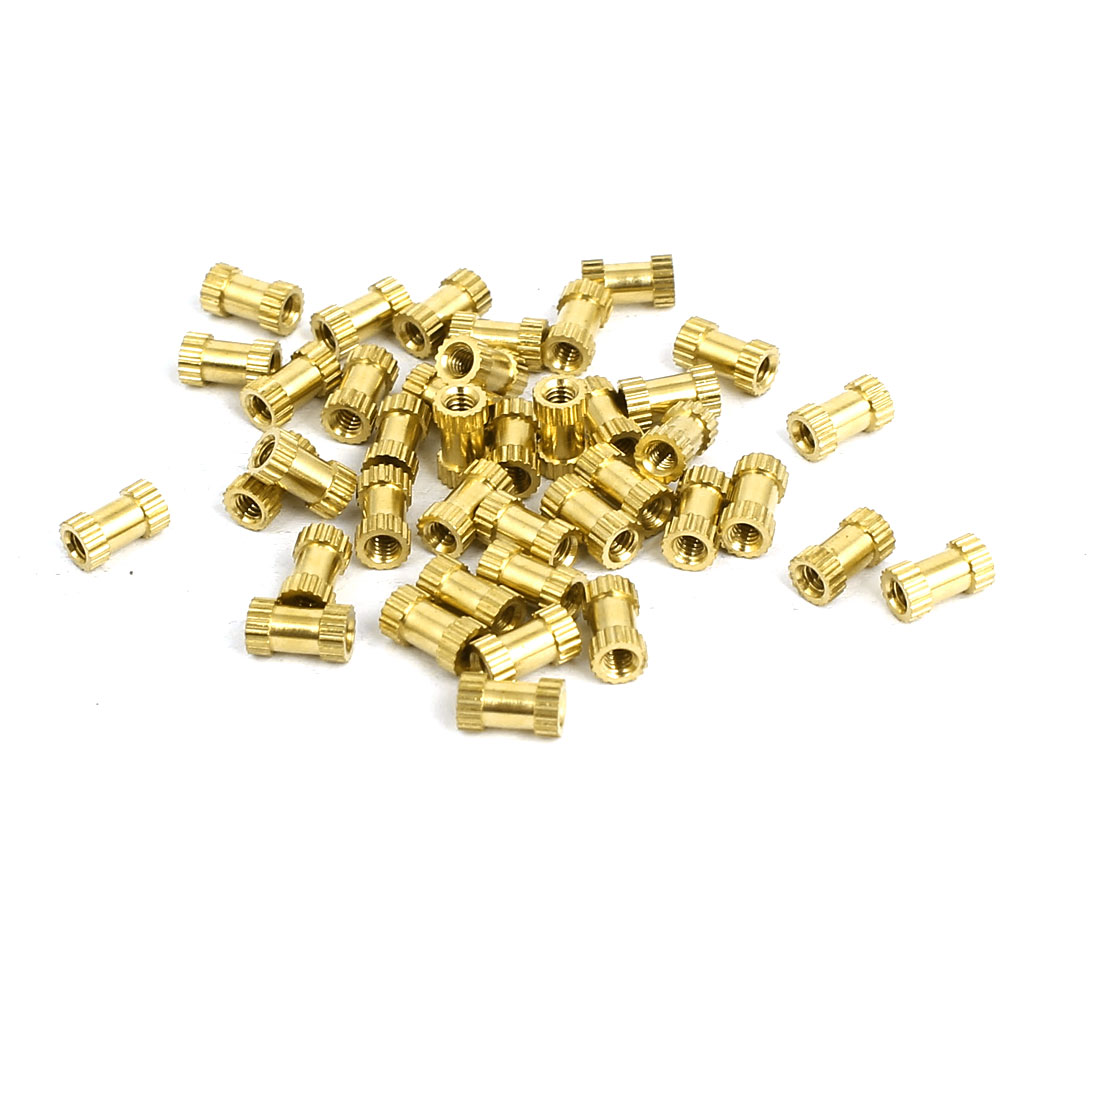 M2x6mmx3.5mm Female Threaded Brass Knurled Insert Embedded Nuts Gold Tone 40pcs